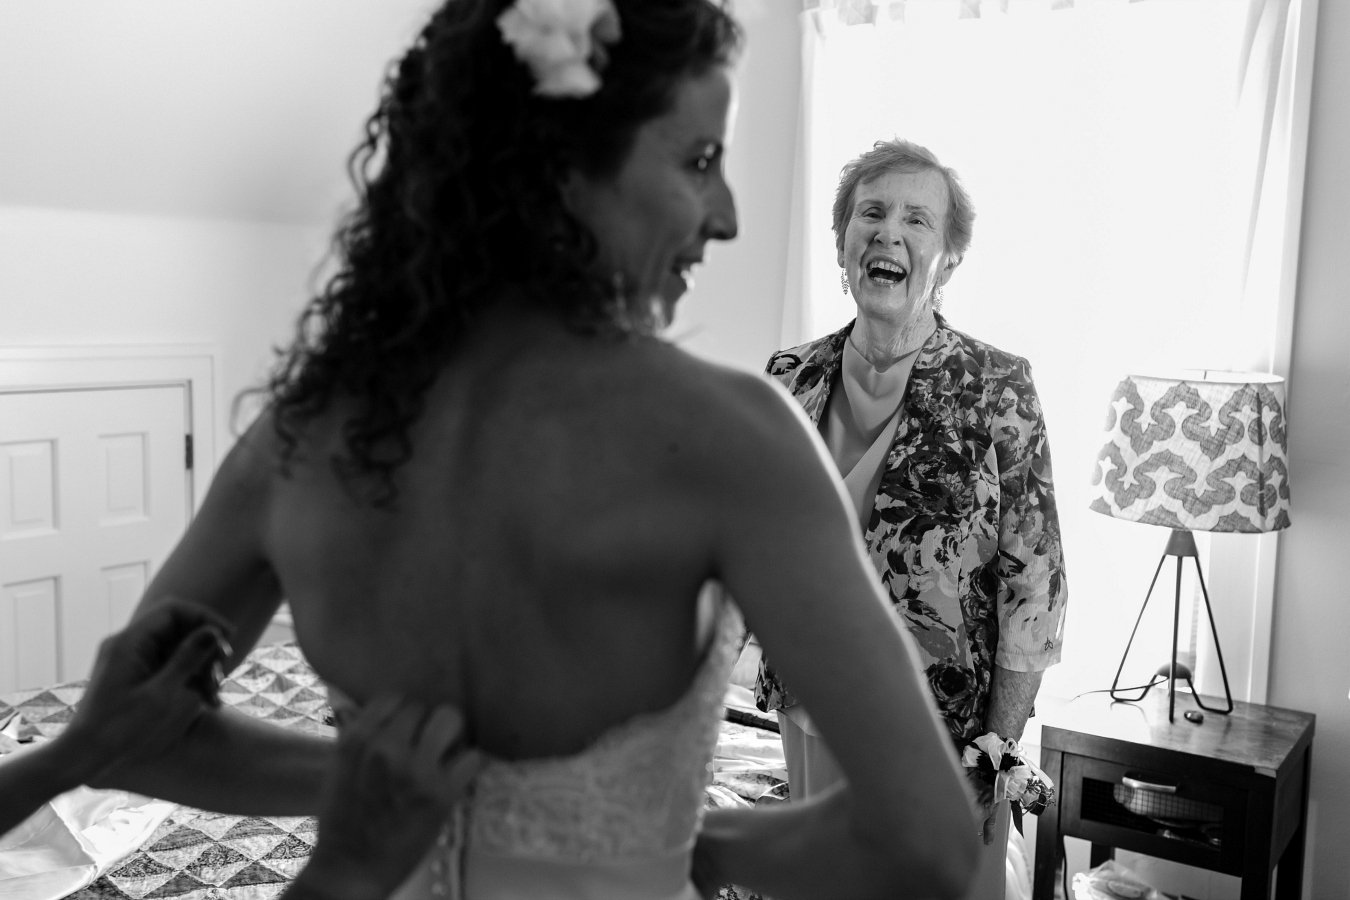 Tips for Best Wedding Photos: Have Your Mom Sit with You as You Get Dressed